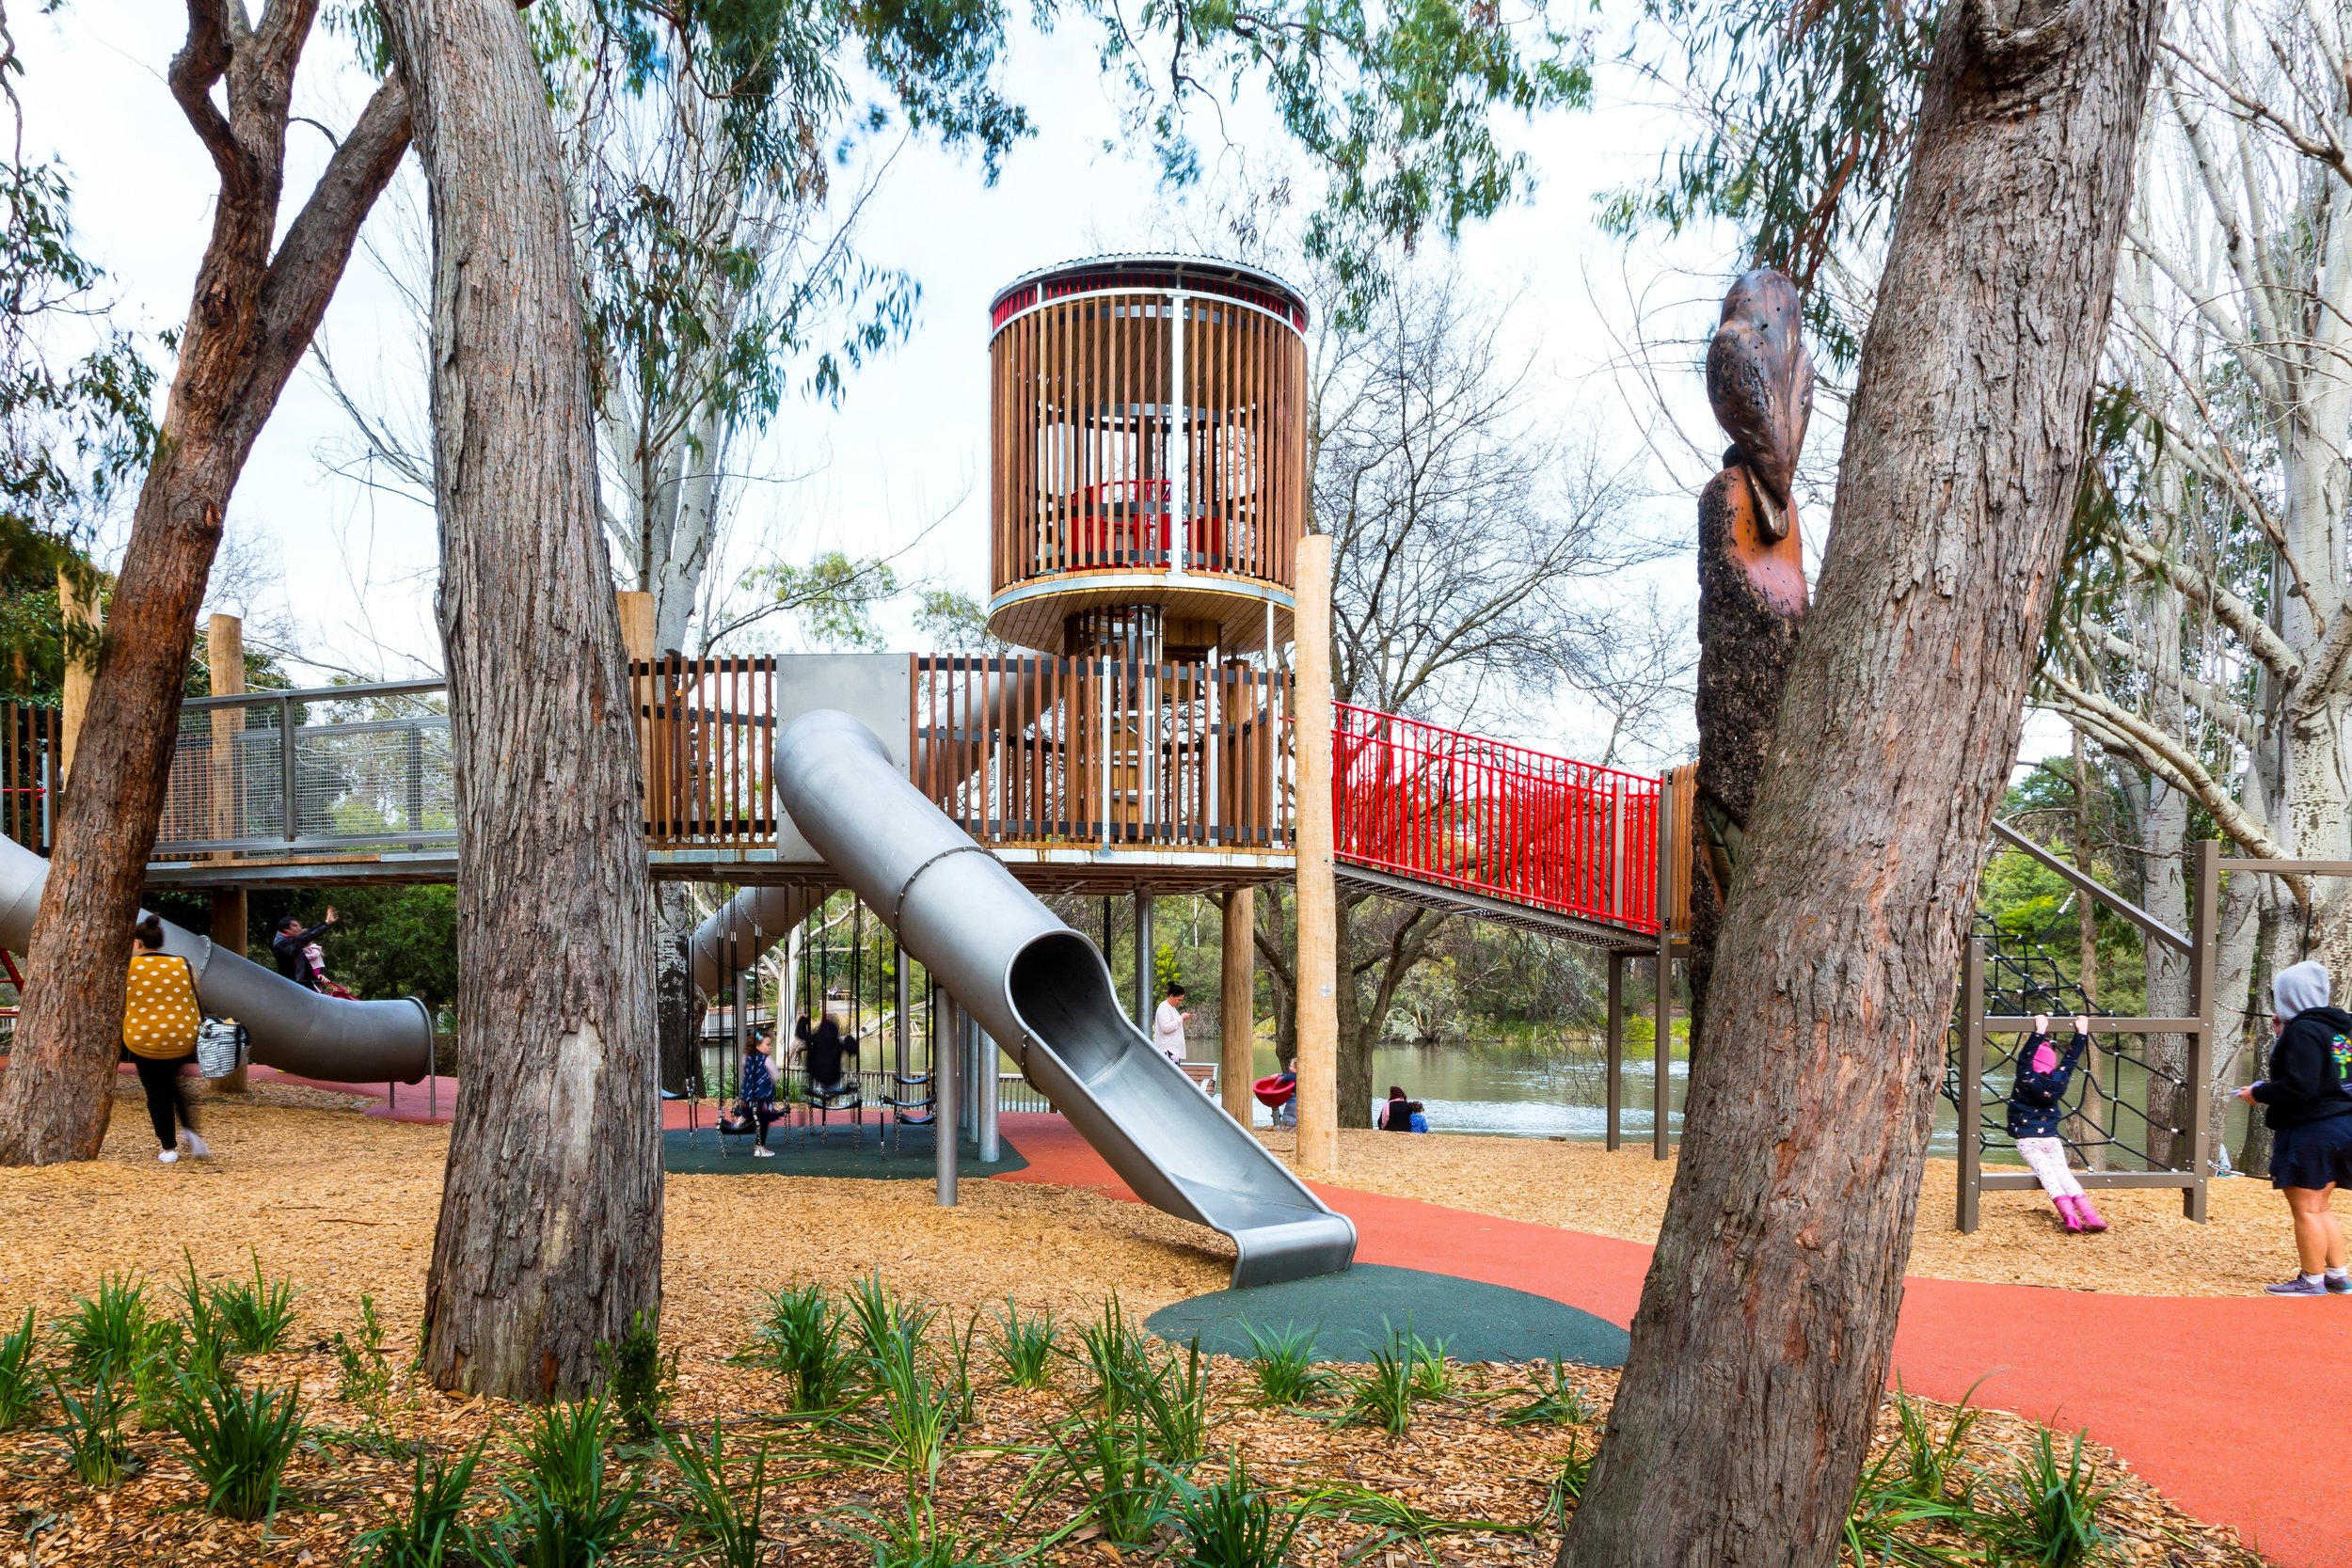 Ringwood Lake custom playground was a challenge but the end result was worth it.